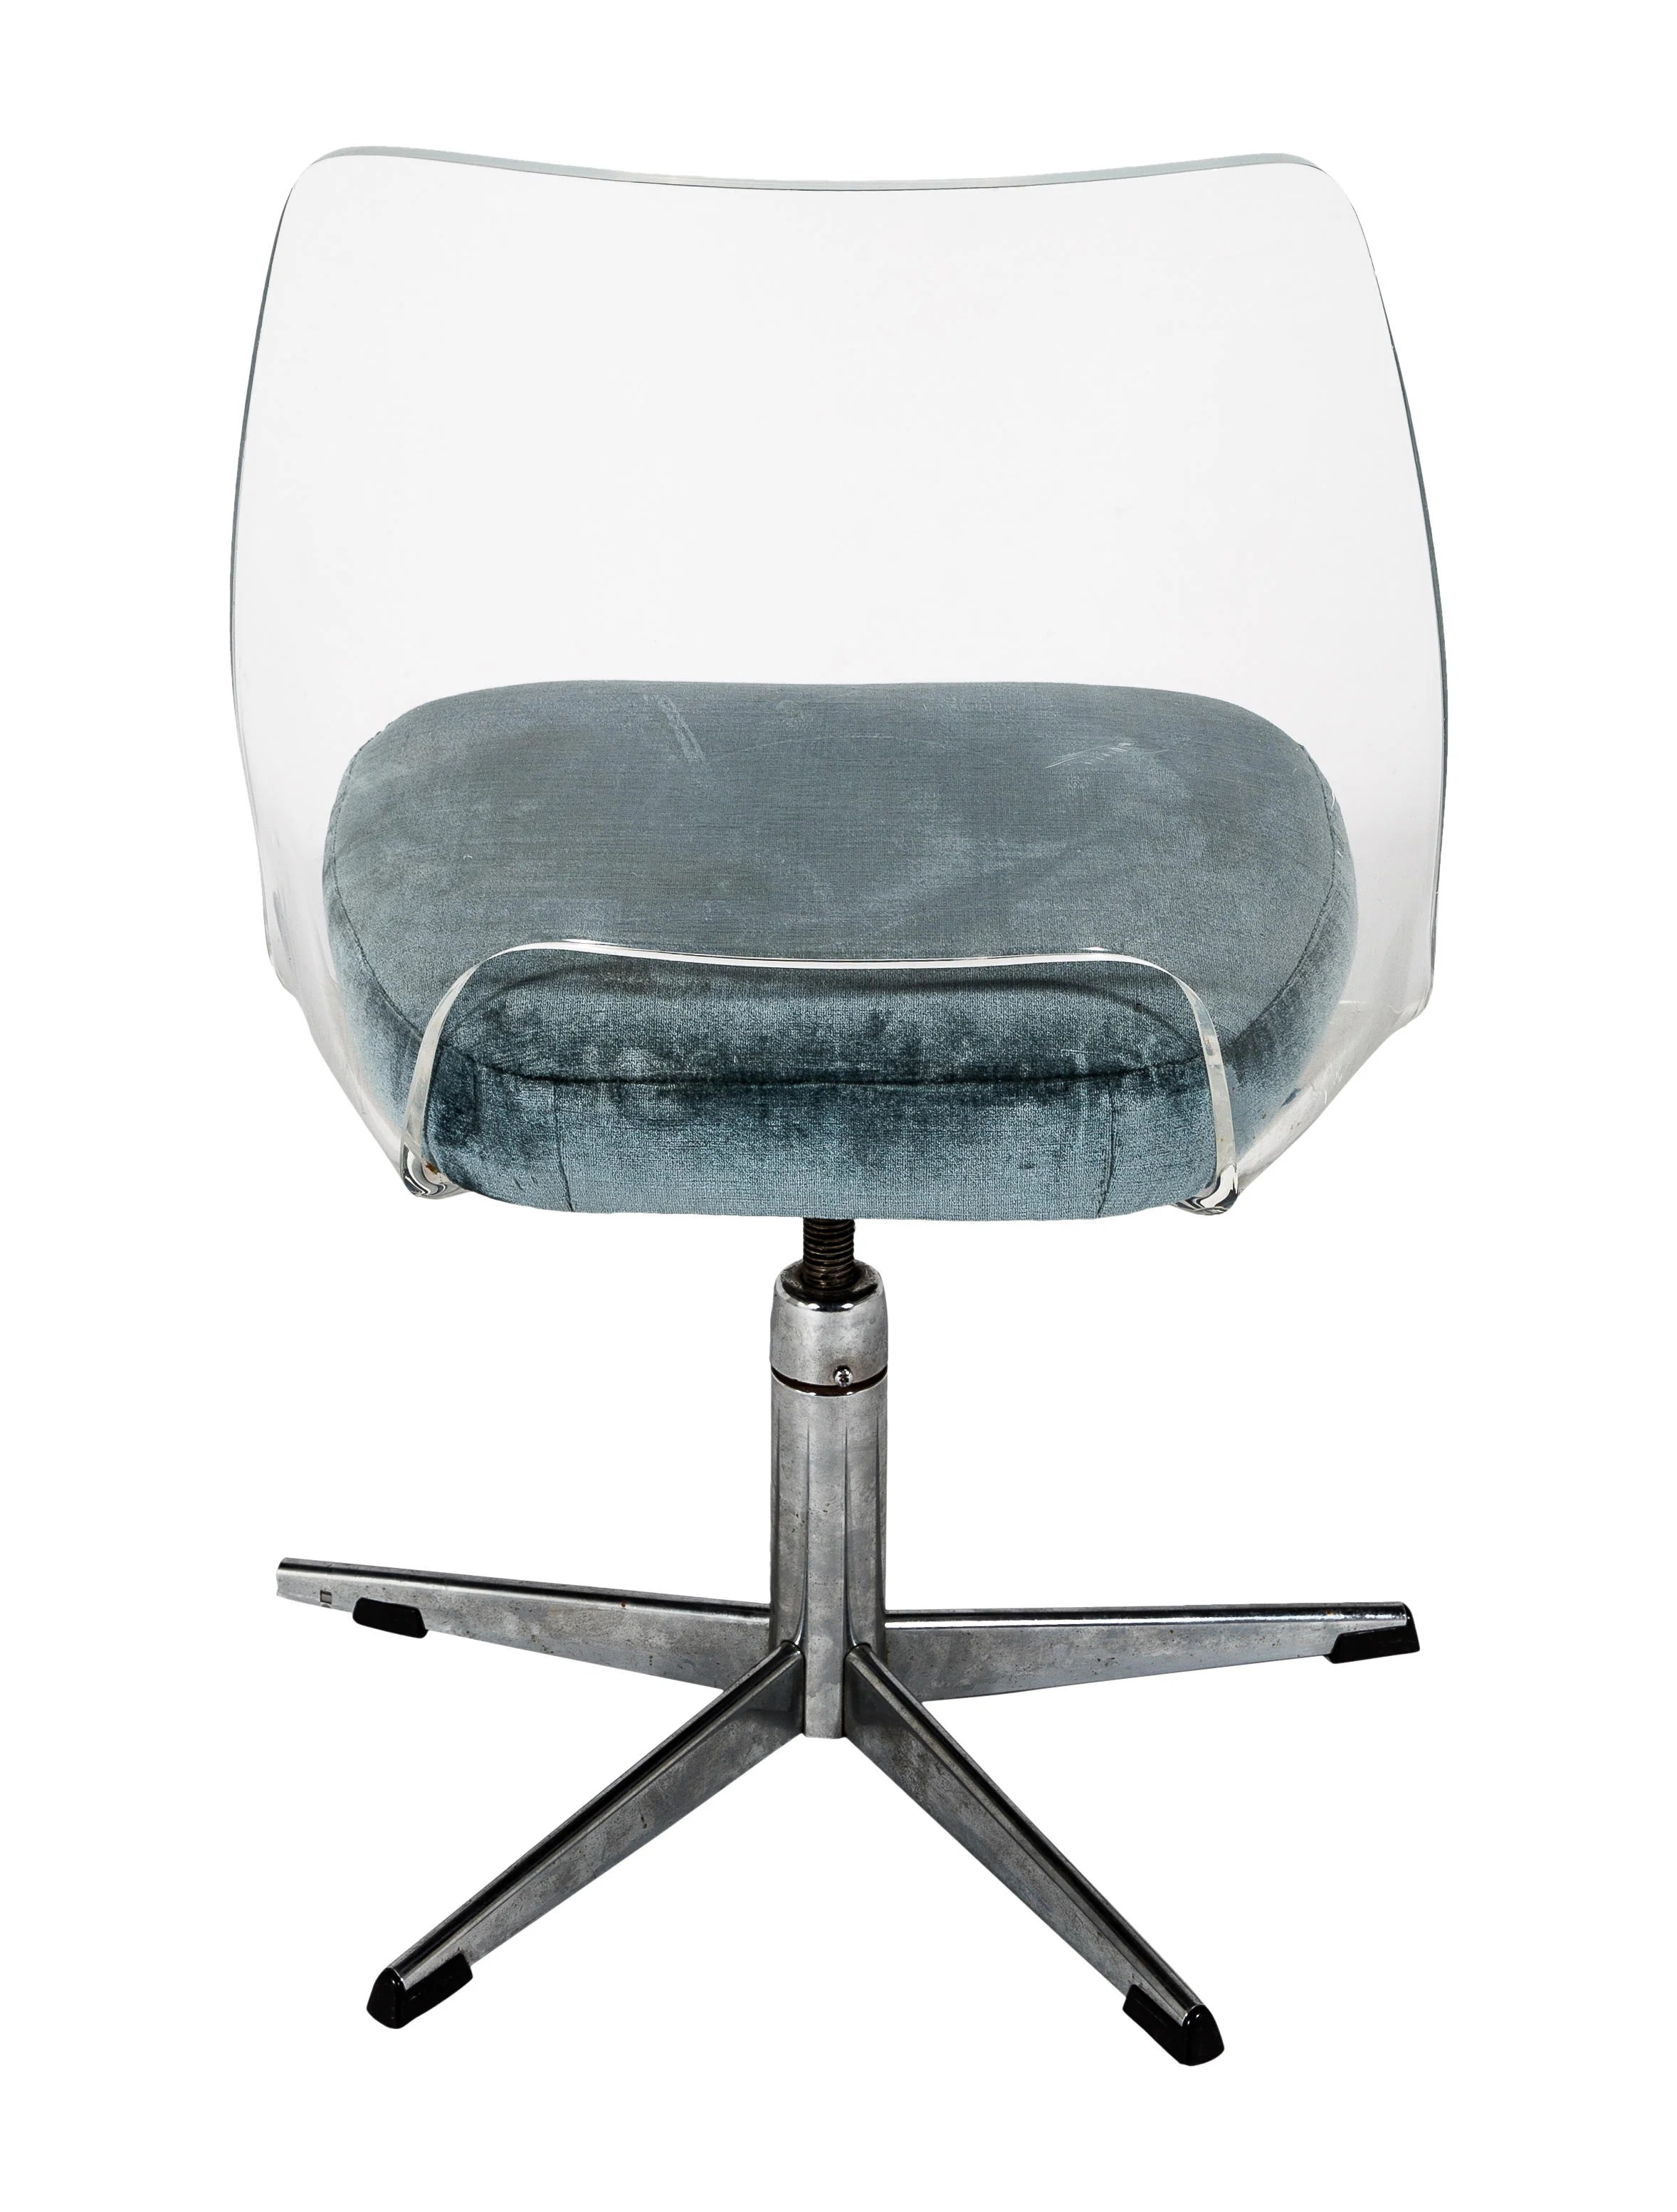 Acrylic Desk Chair Doerner Faultless Lucite Upholstered Desk Chair